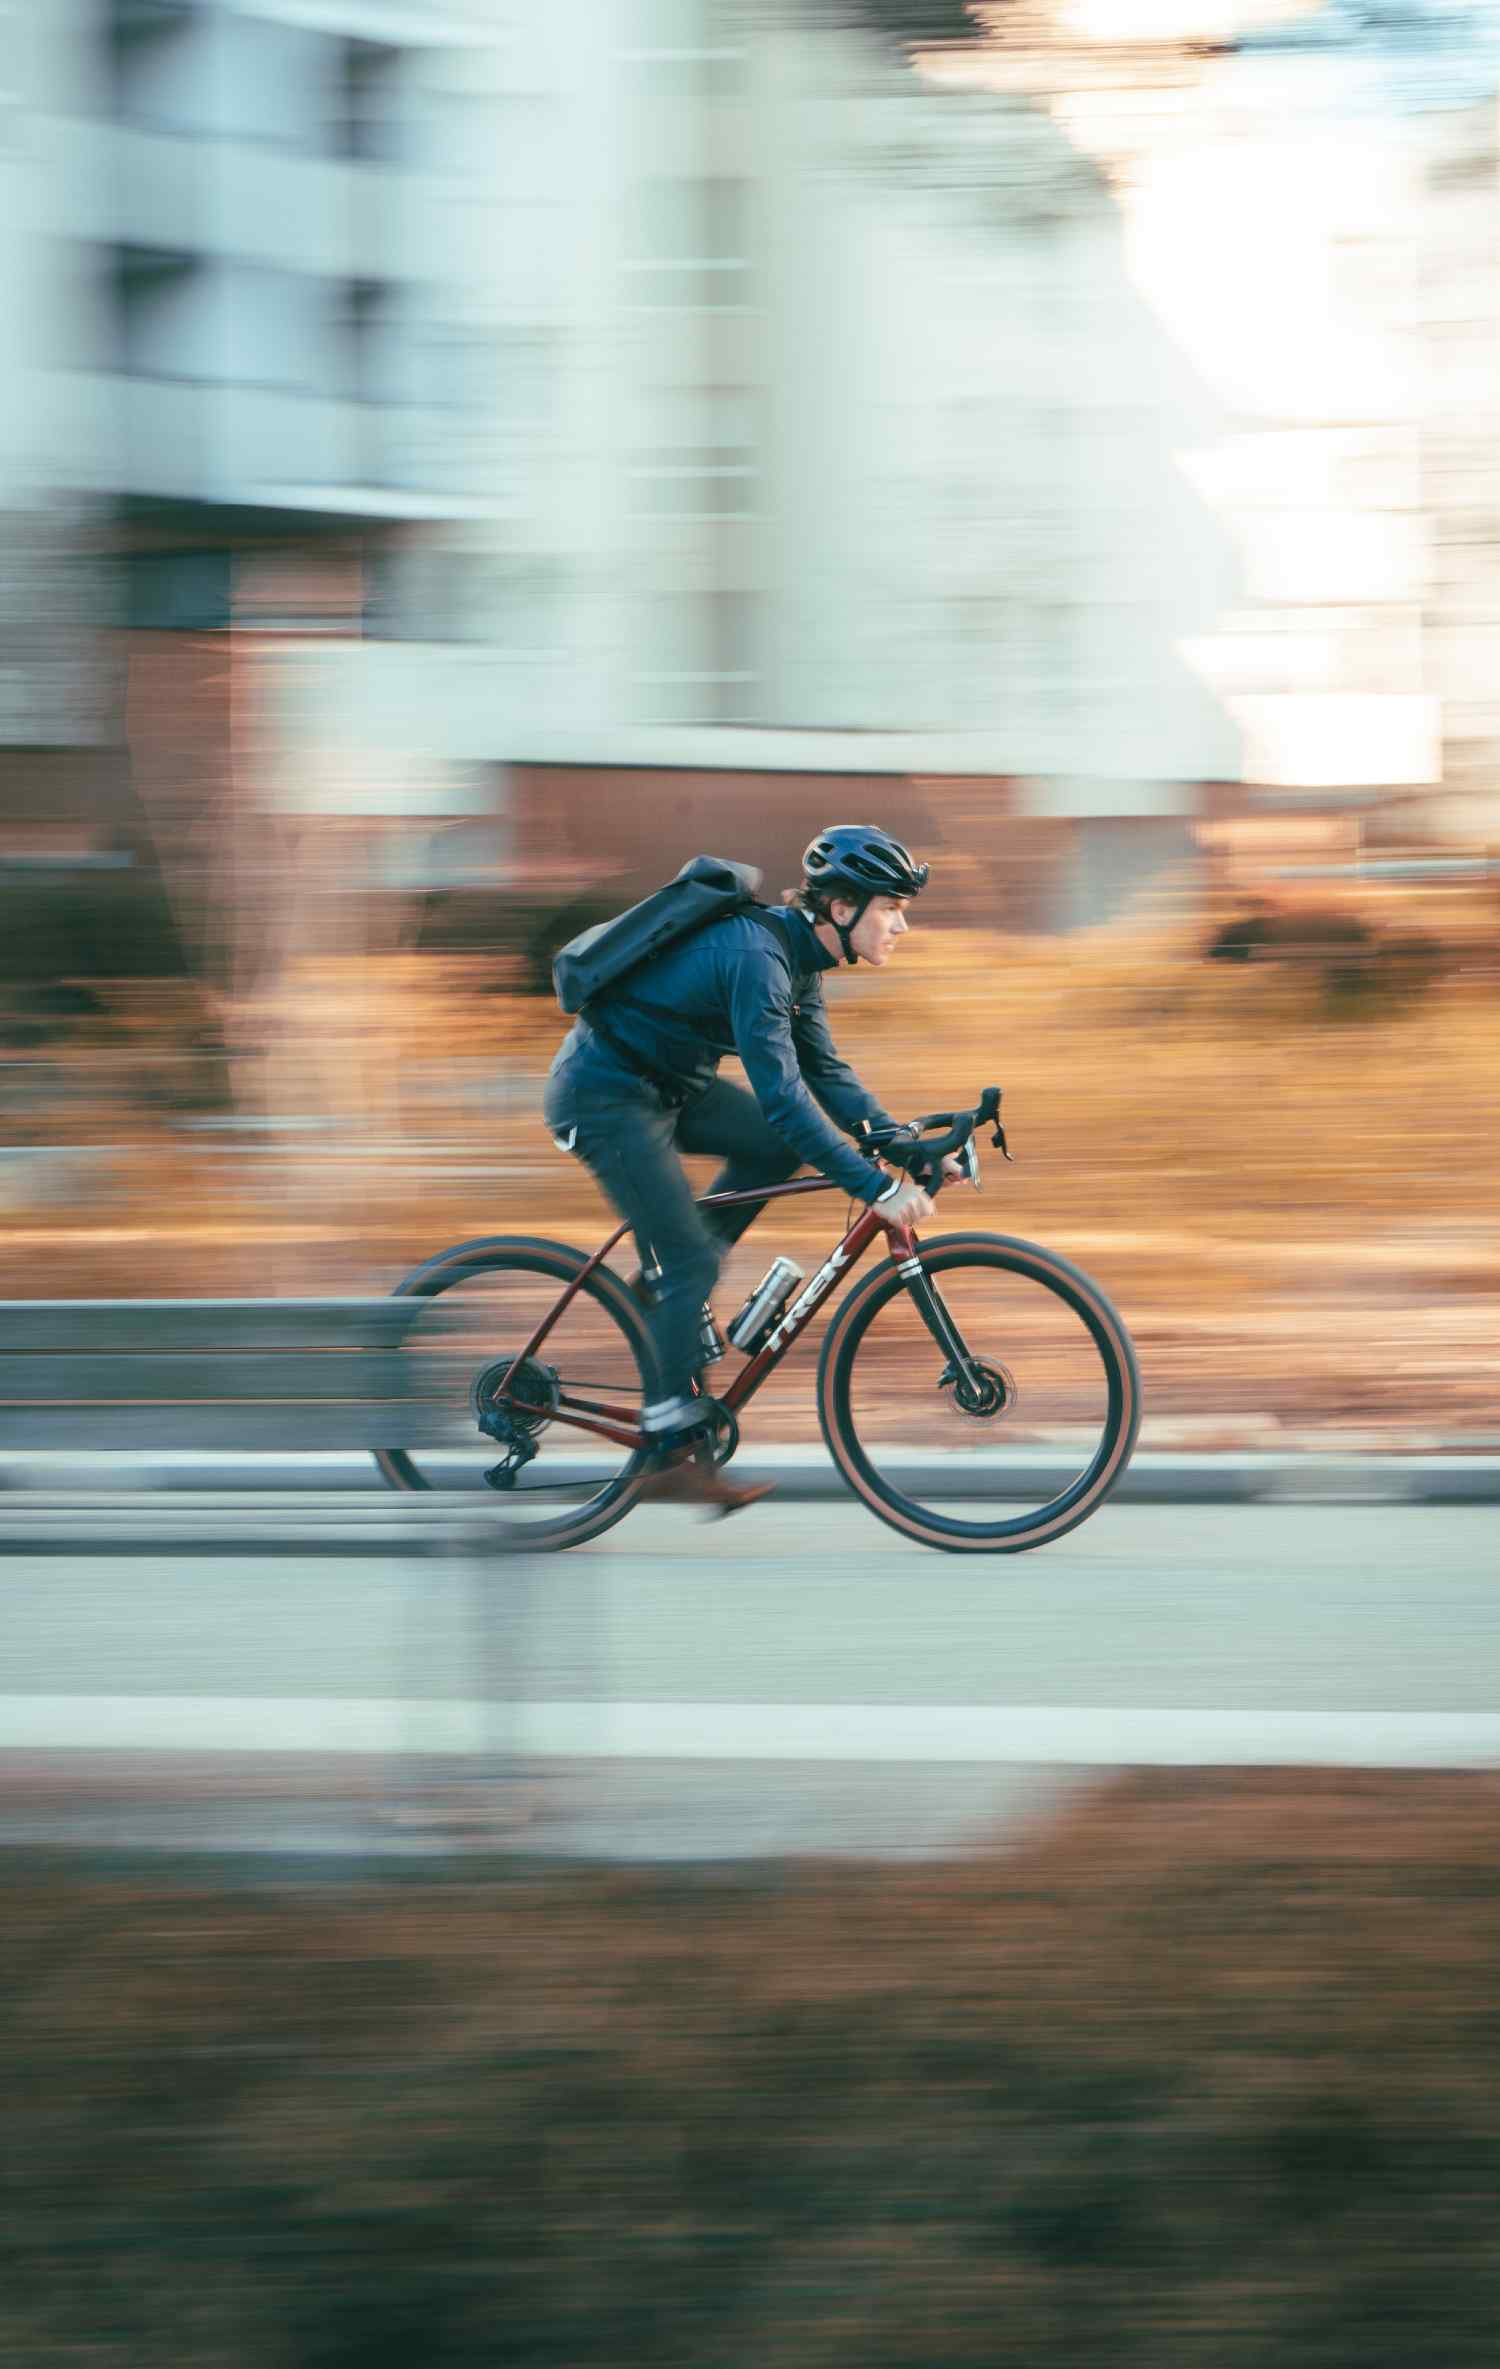 Seb Jarrot riding with the City Backpack